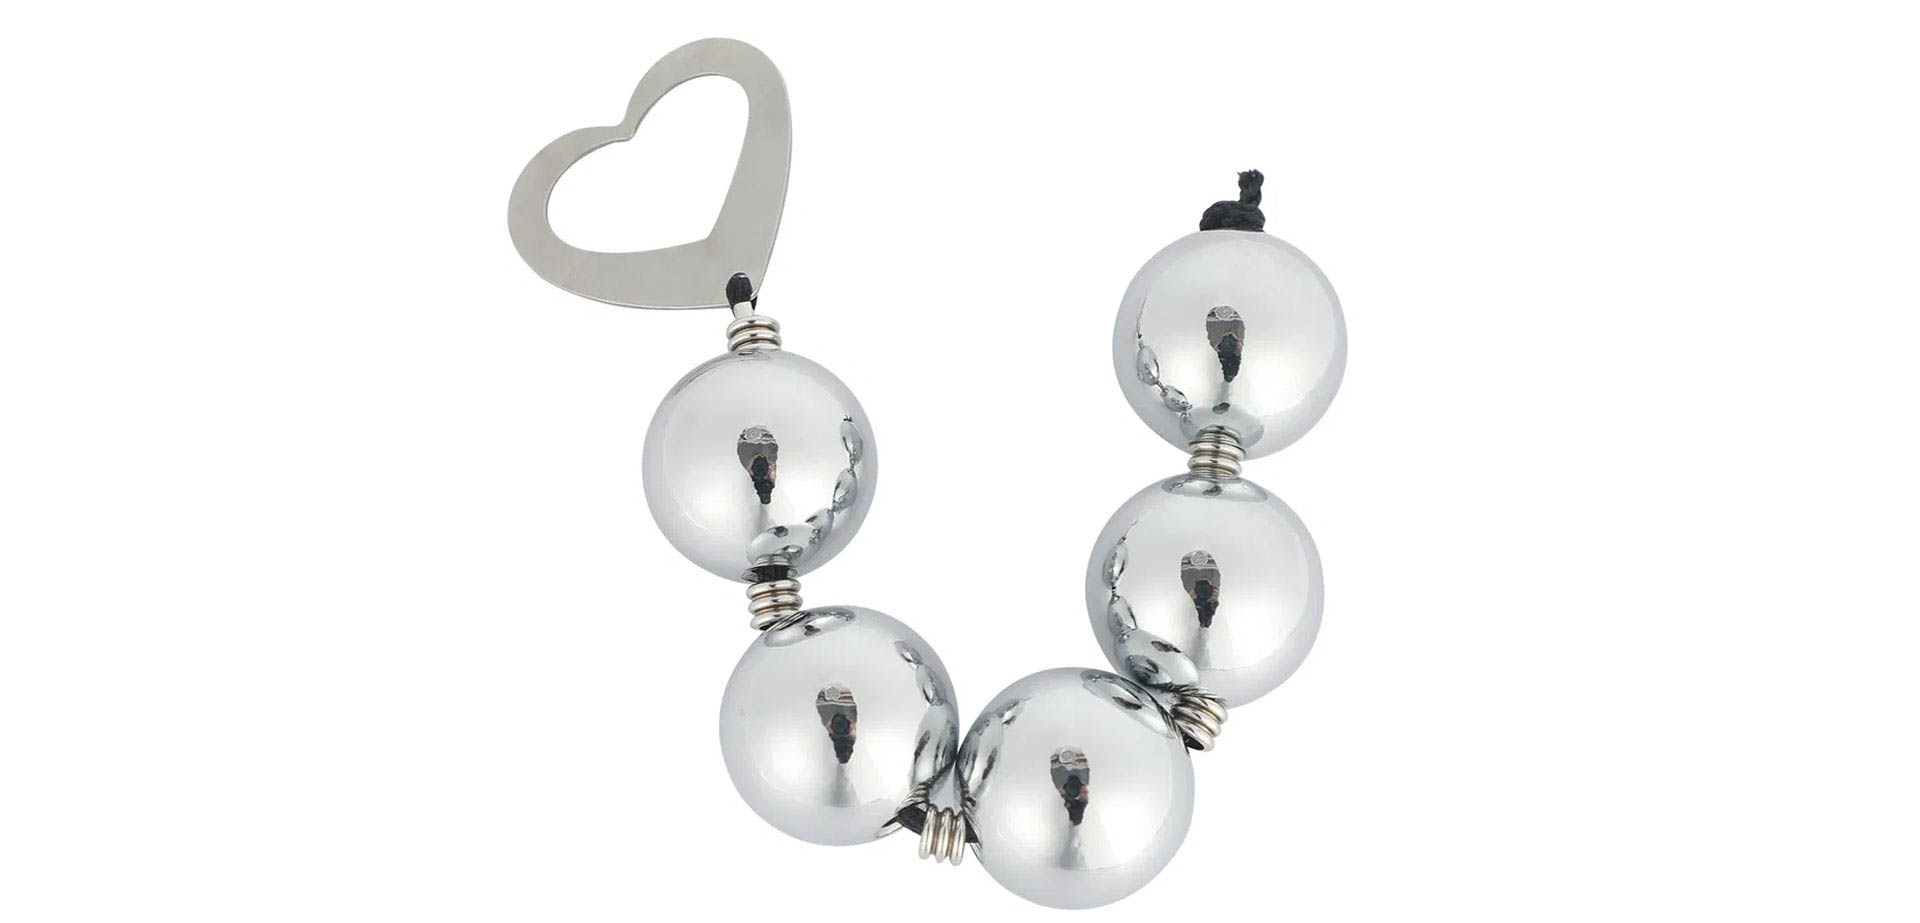 Stainless Steel Kegel Balls.